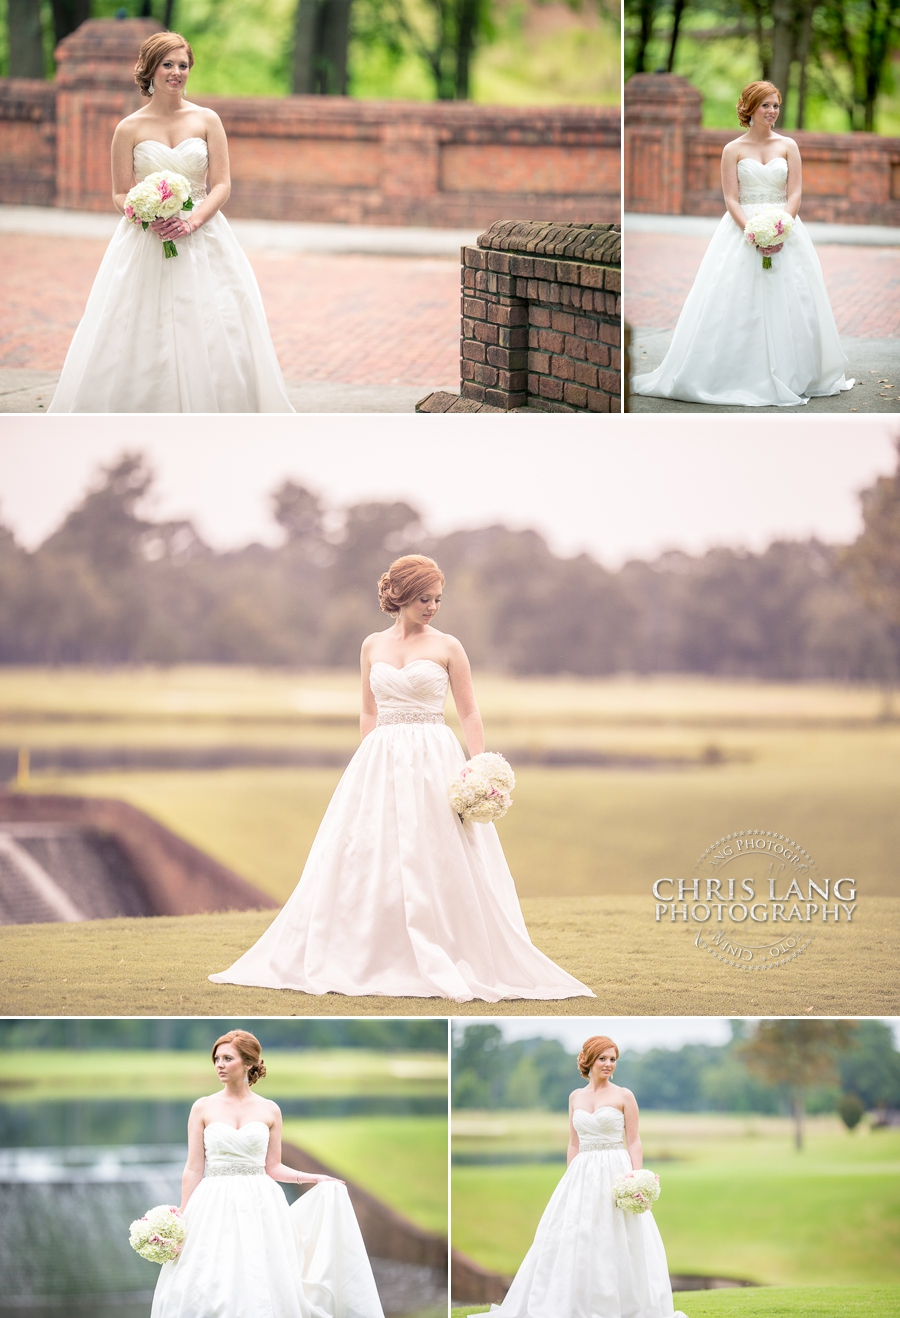 Wedding pictures at the brick bridge in River Landing - Wedding Photography Ideas